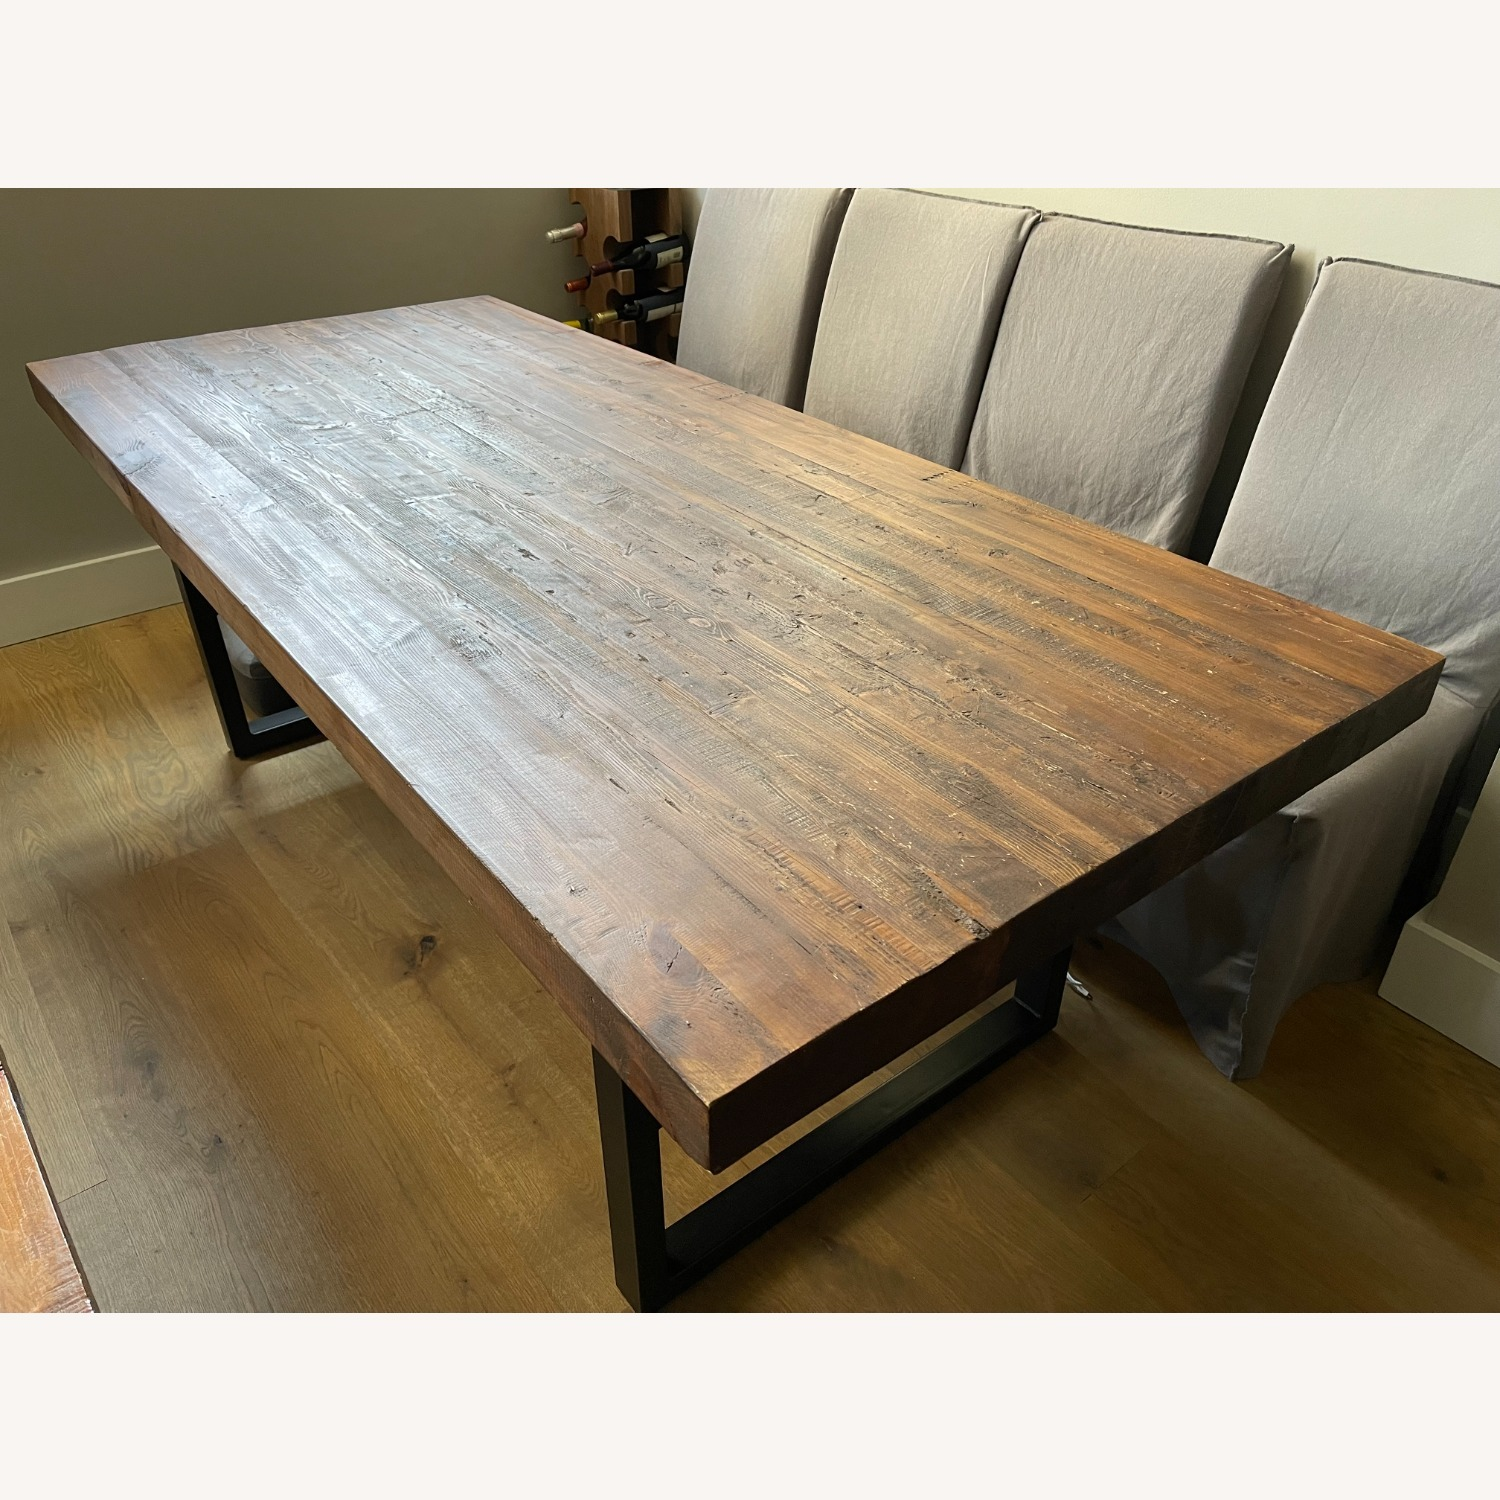 Pottery Barn Griffin Reclaimed Wood Dining Table - image-3